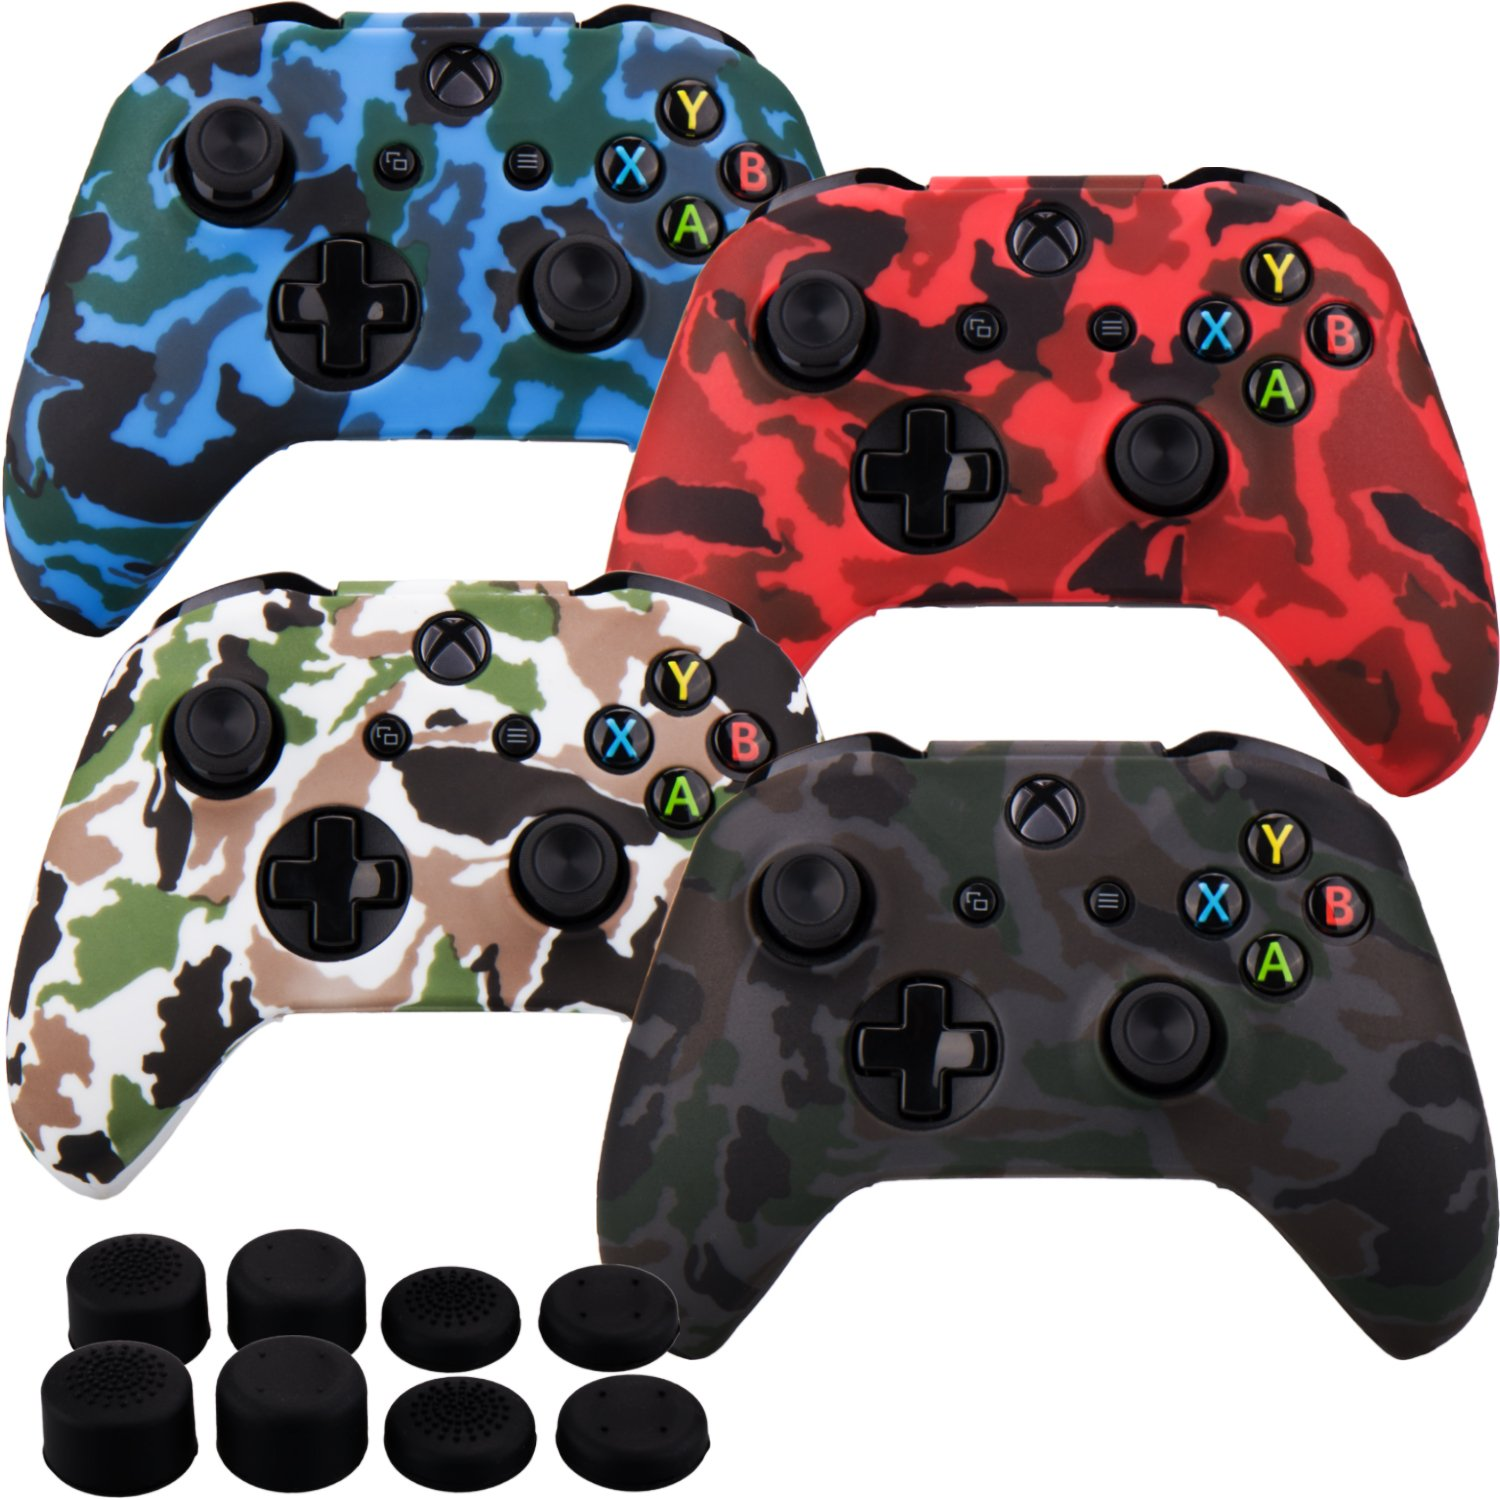 FPS PRO extra height thumb grips x 8 MXRC Silicone rubber cover skin case anti-slip STUDDED Customize for Xbox One//S//X controller x 2 black /& white